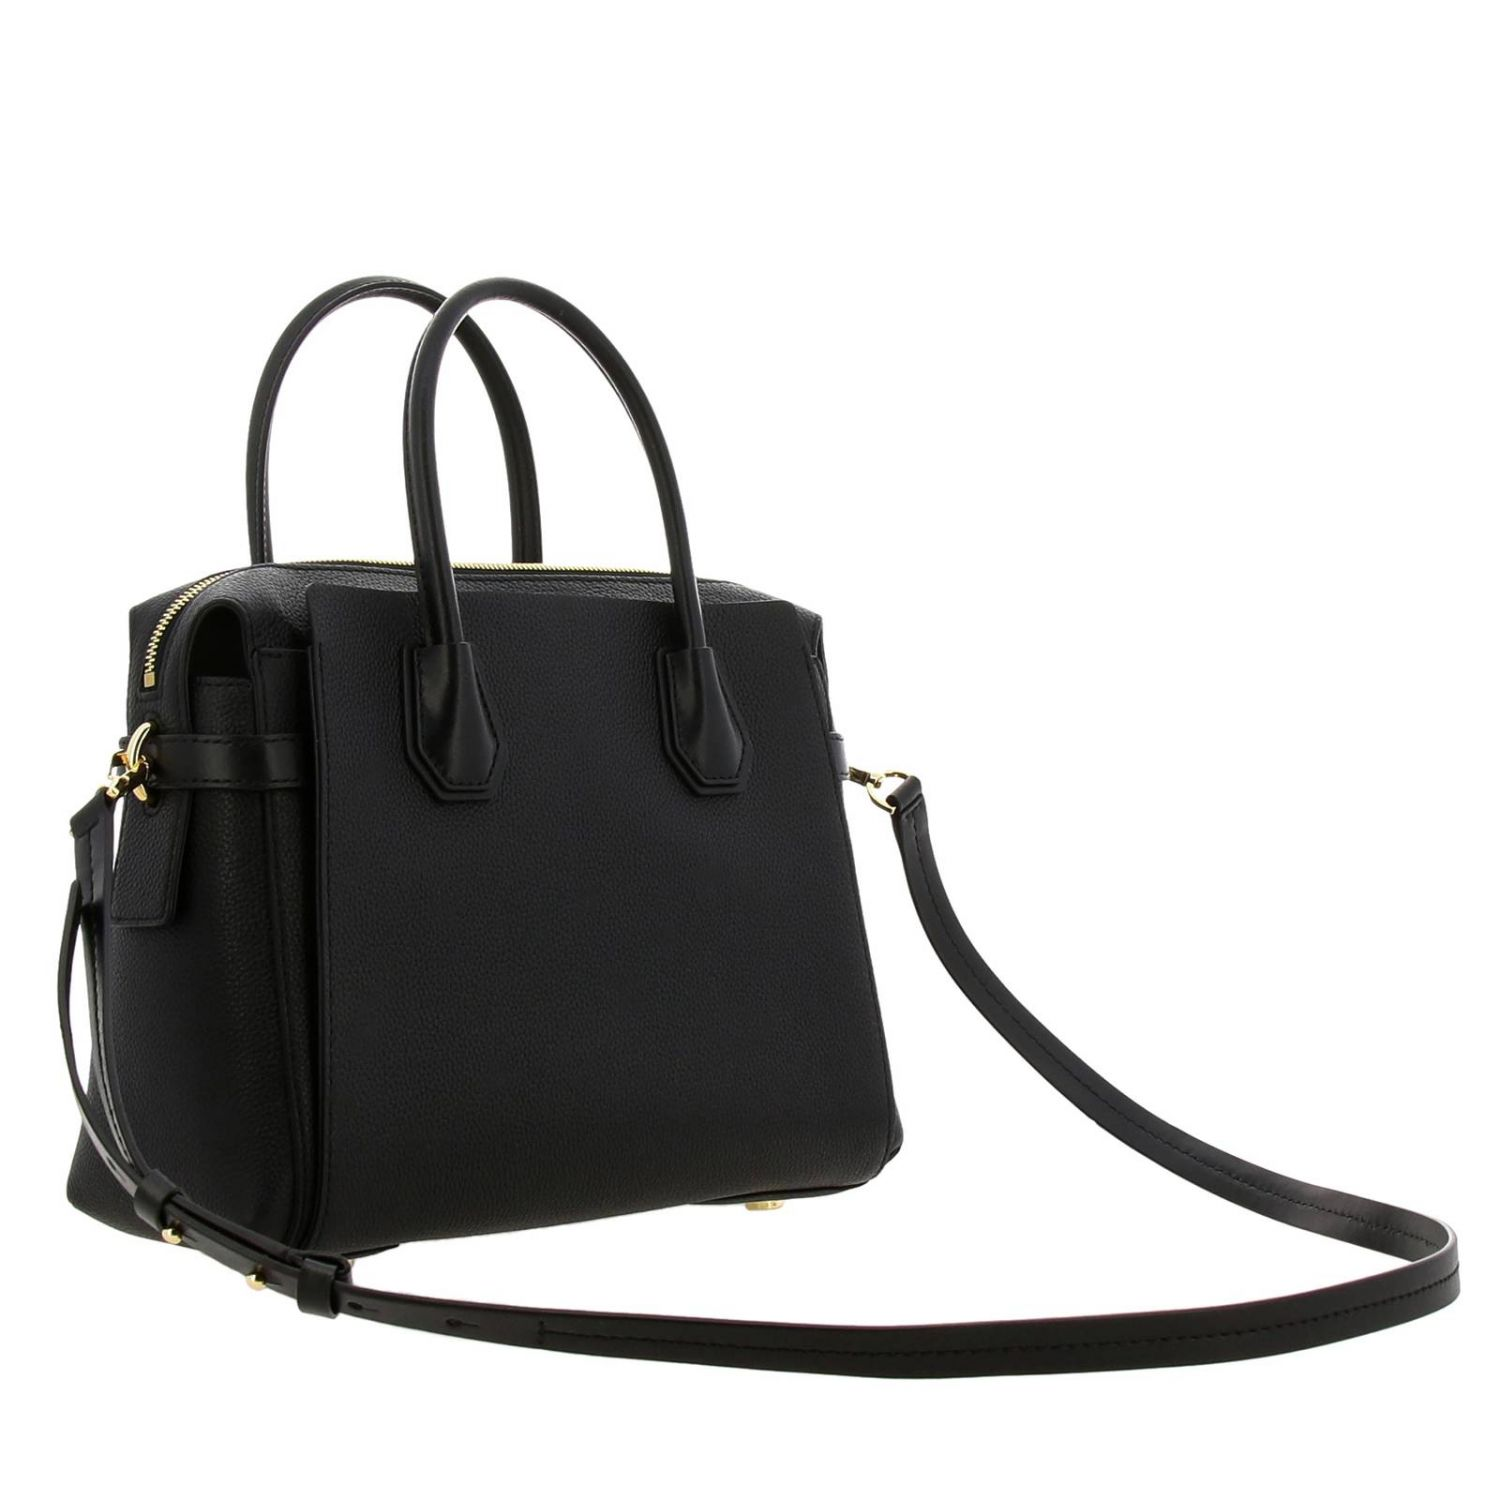 Mercer medium Michael Michael Kors bag in textured leather black 3